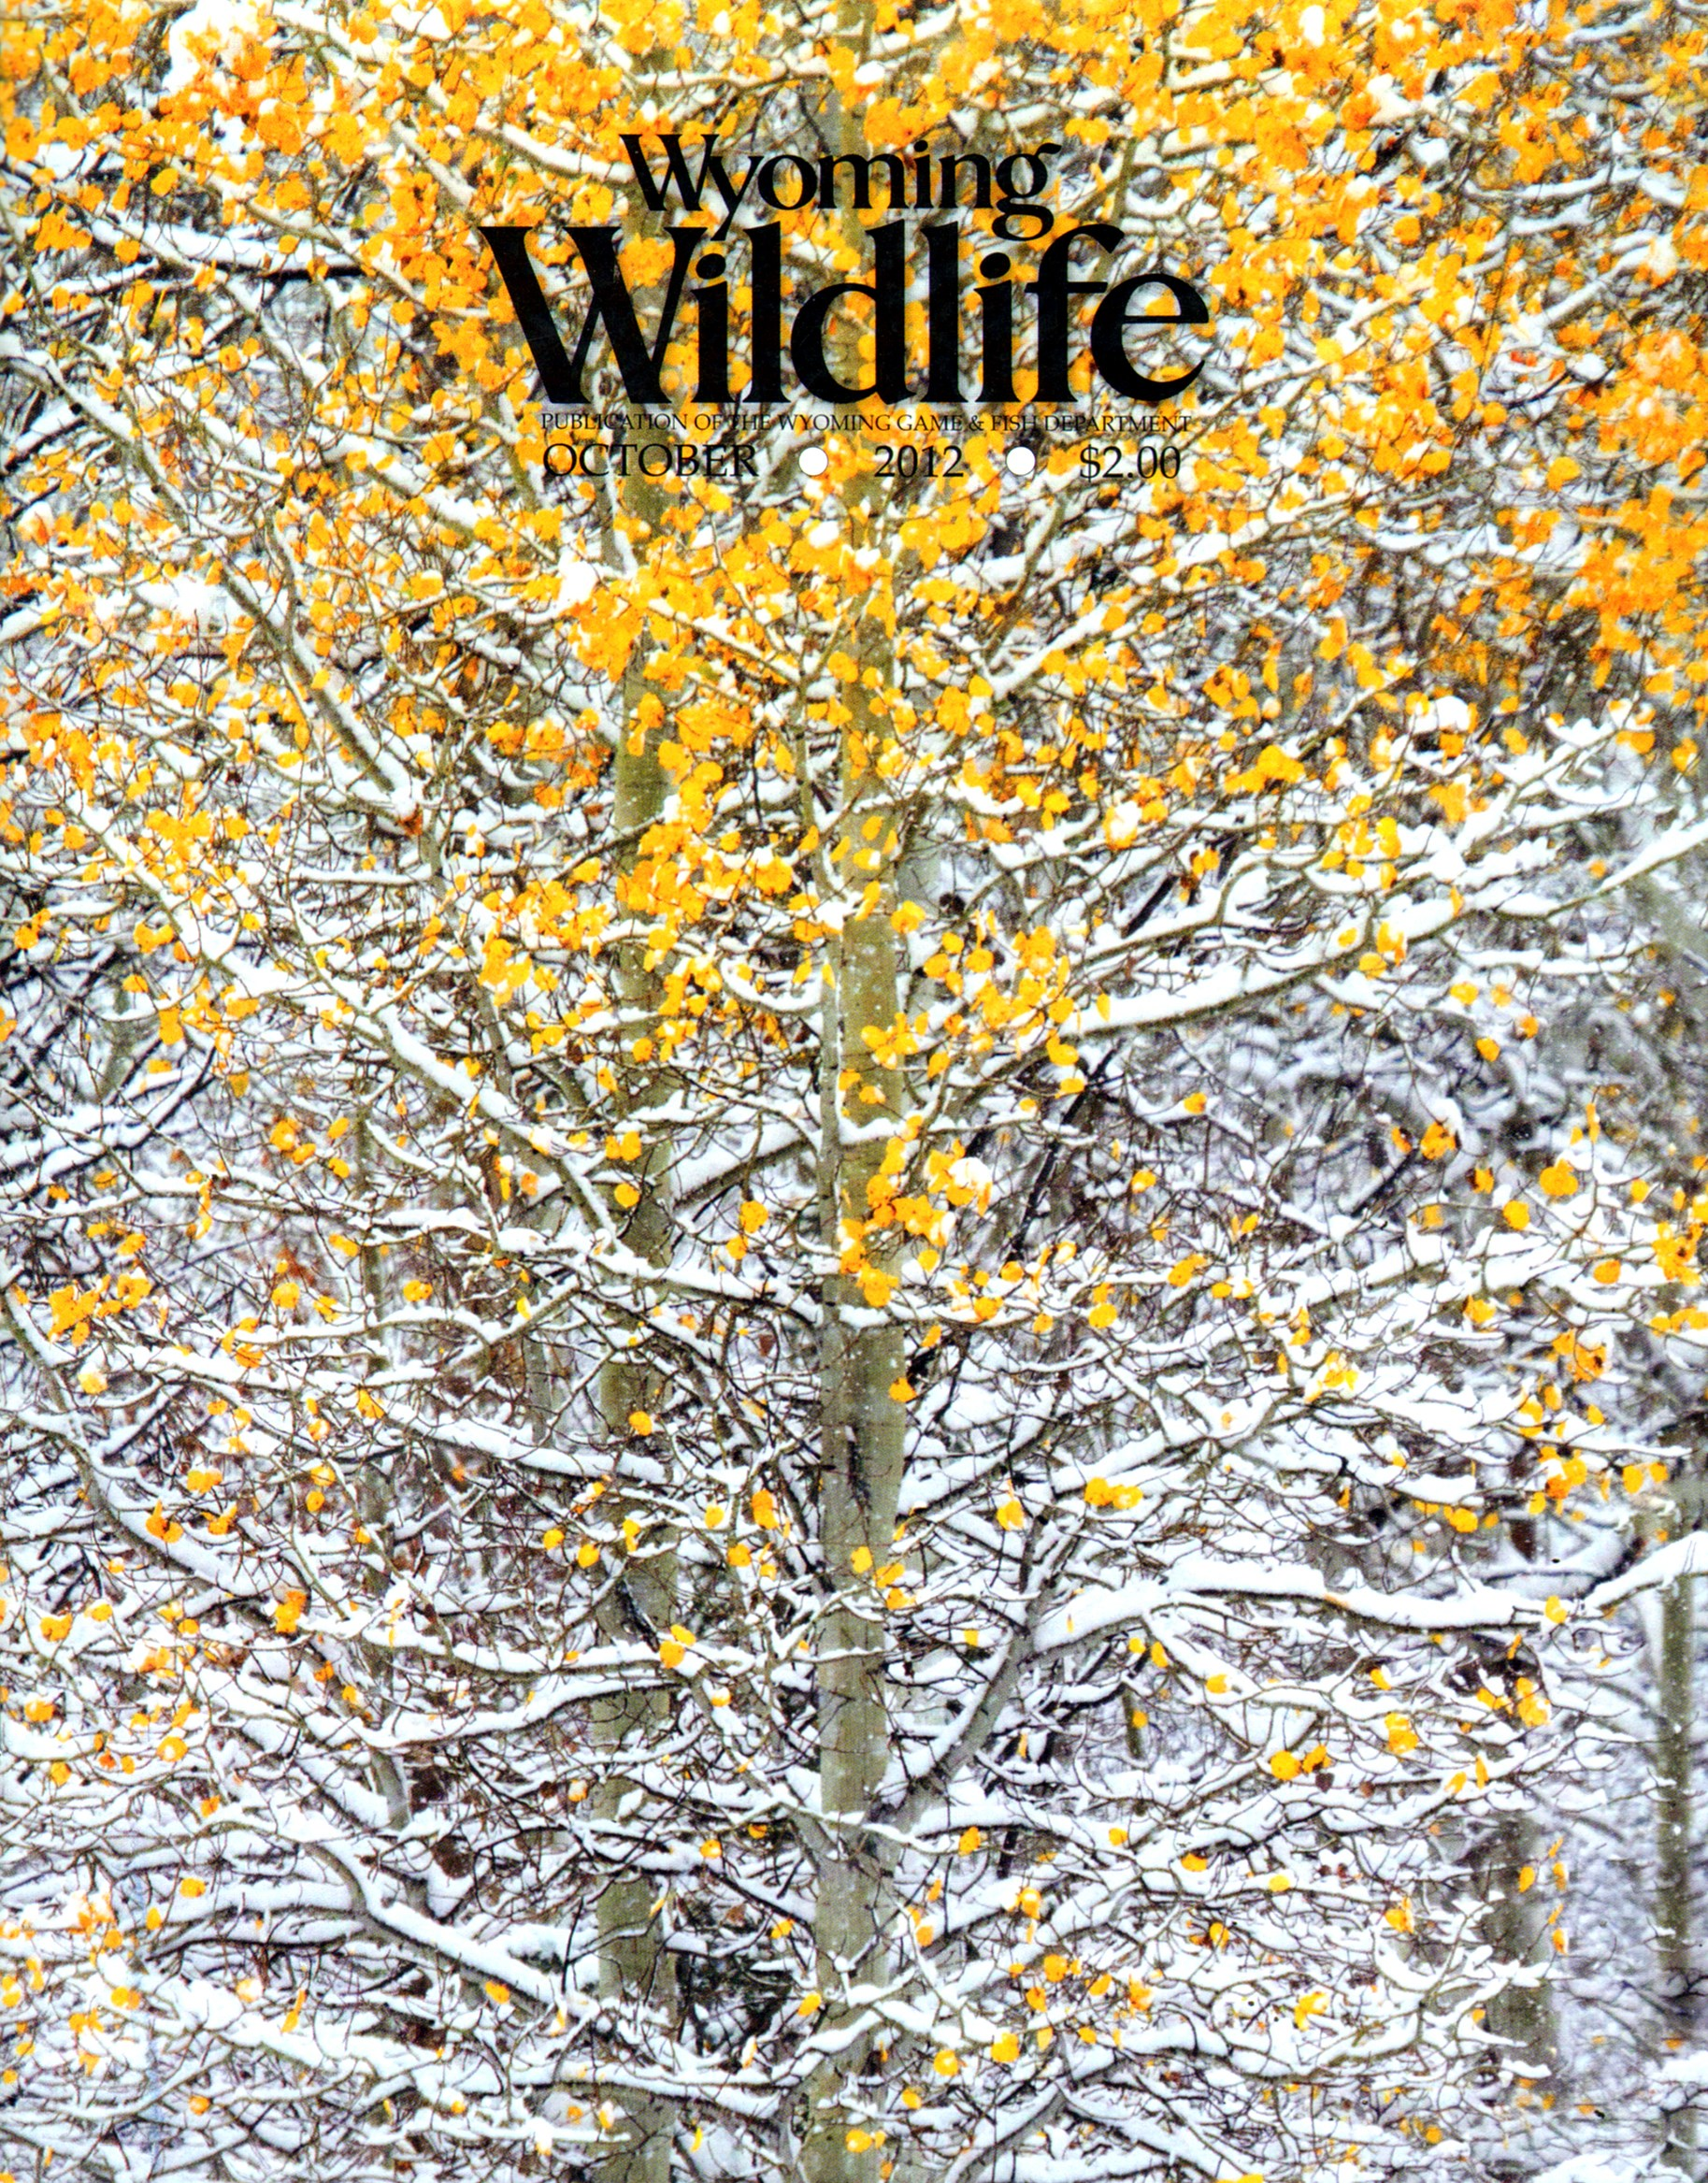 Best Price for Wyoming Wildlife Magazine Subscription